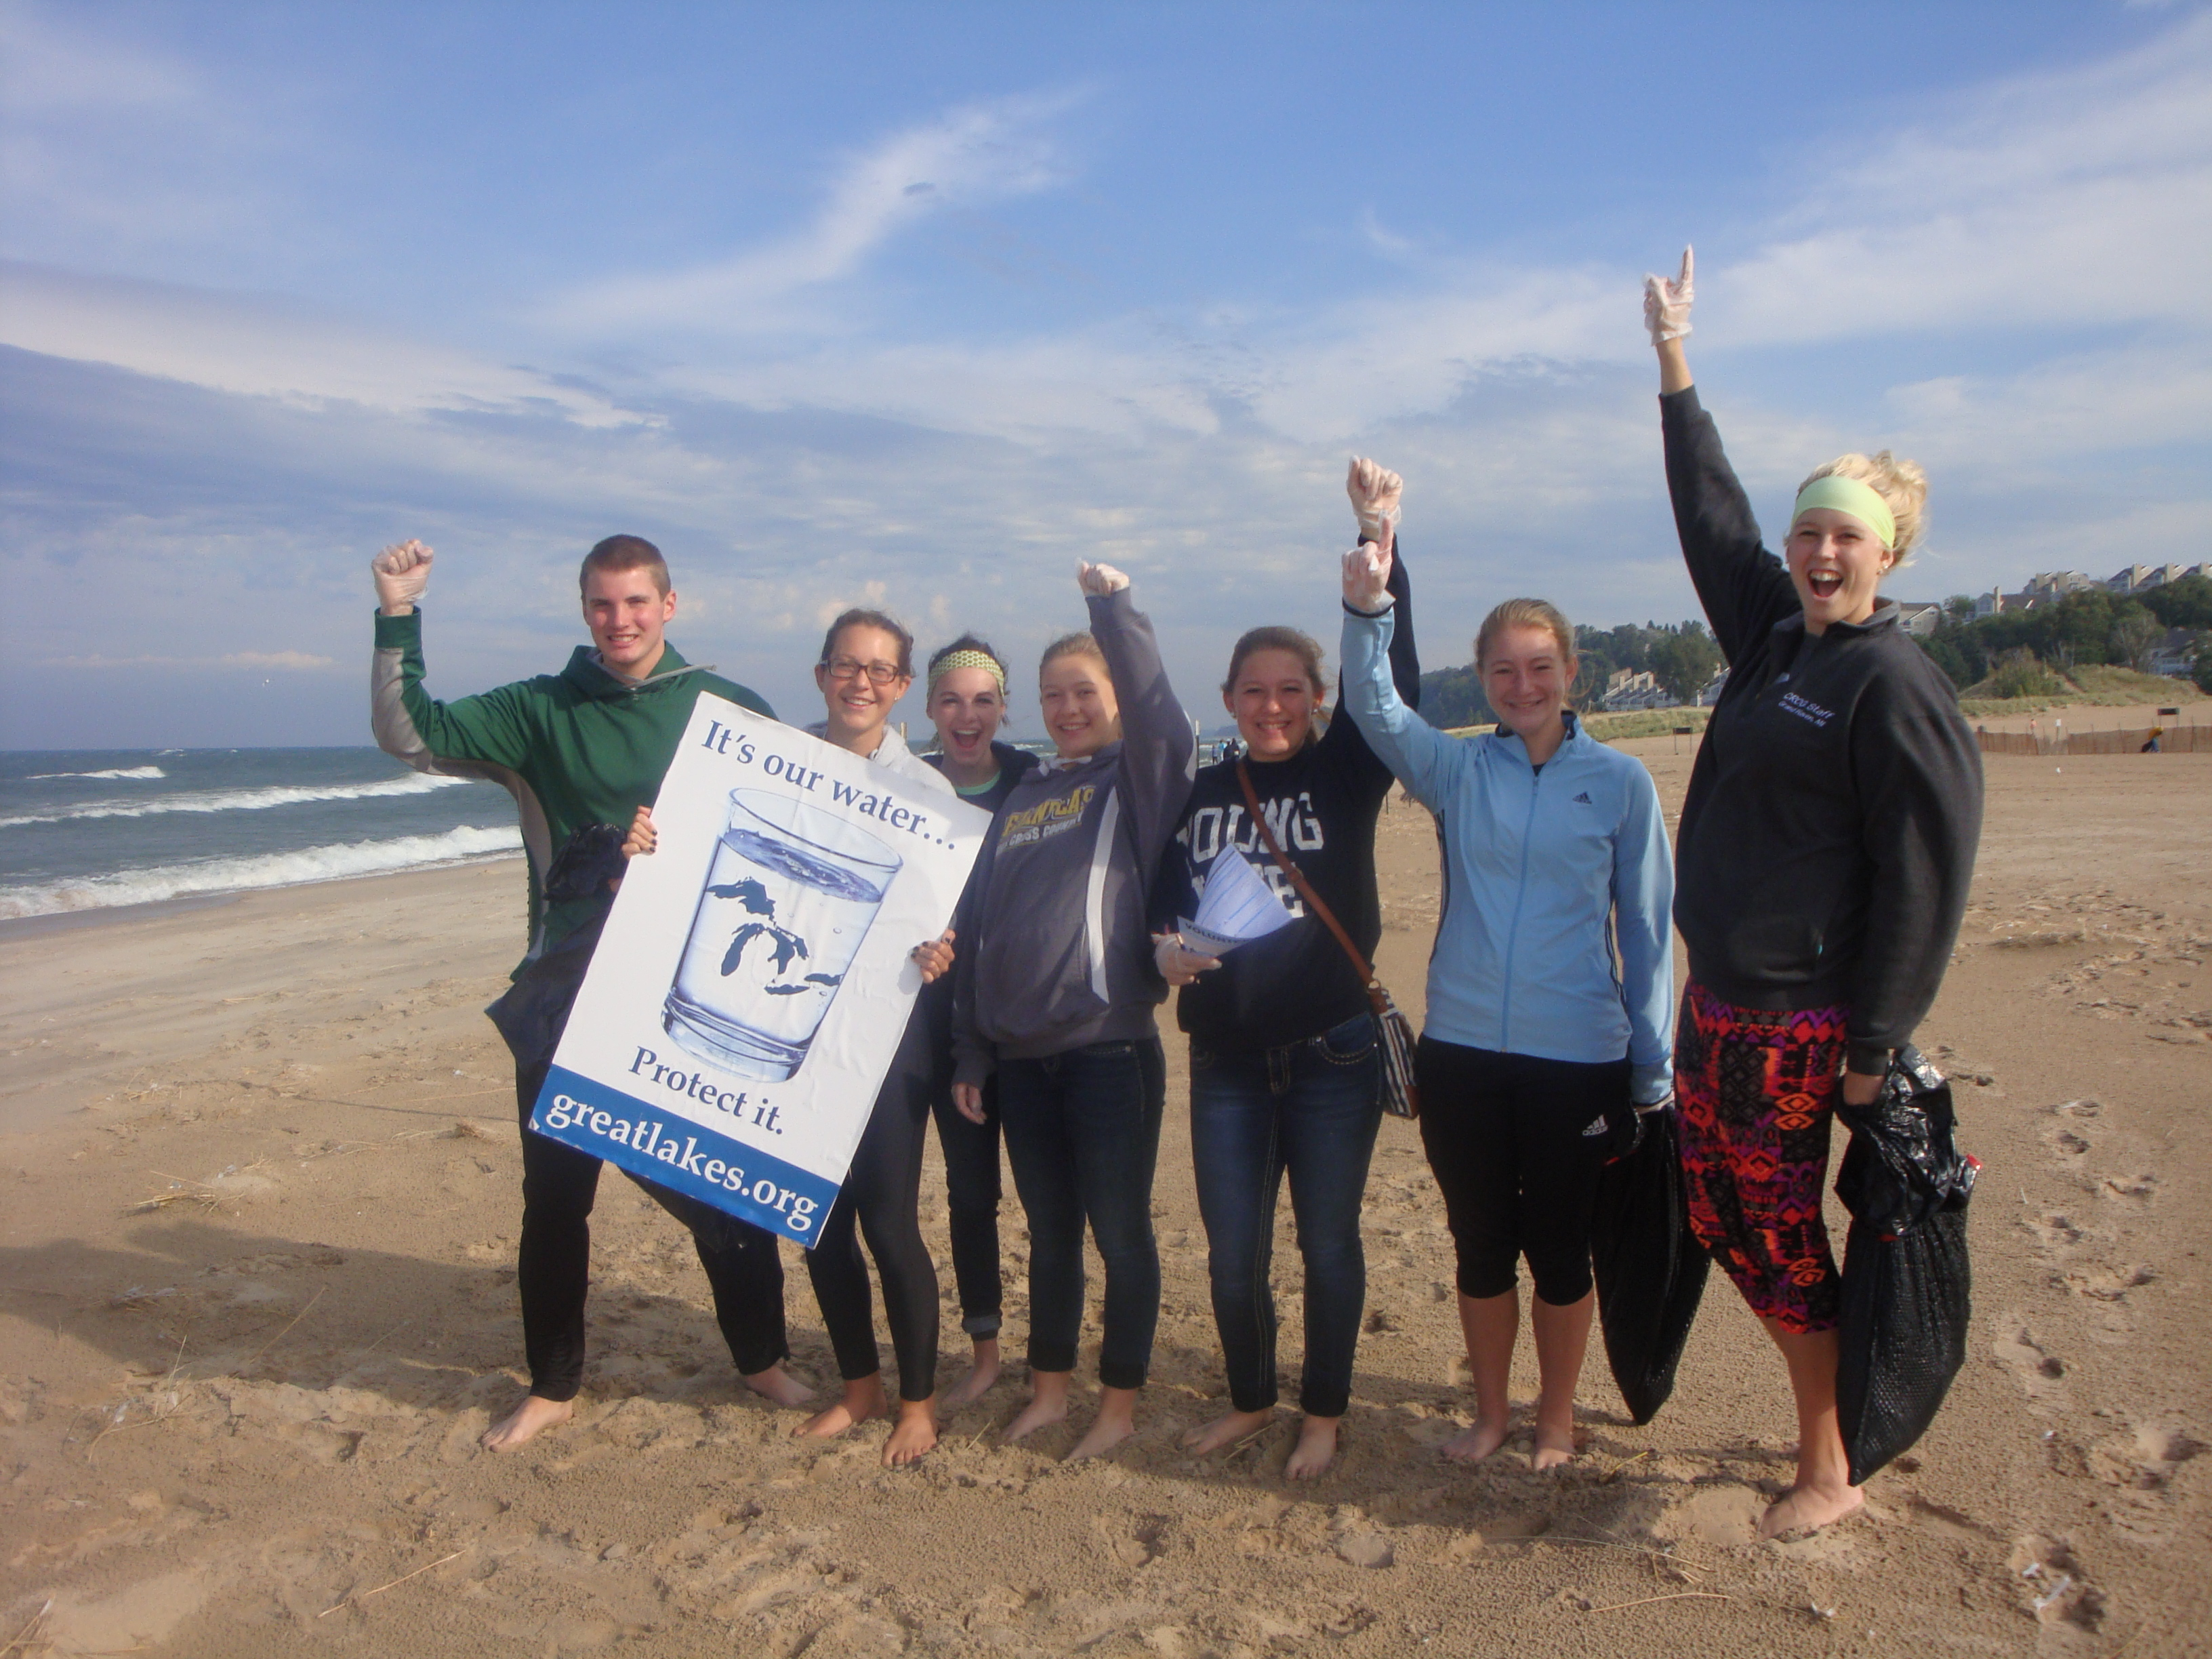 The Holland State Park cleanup was led by Michigan Awesome. Credit: Jamie Cross, Alliance for the Great Lakes.